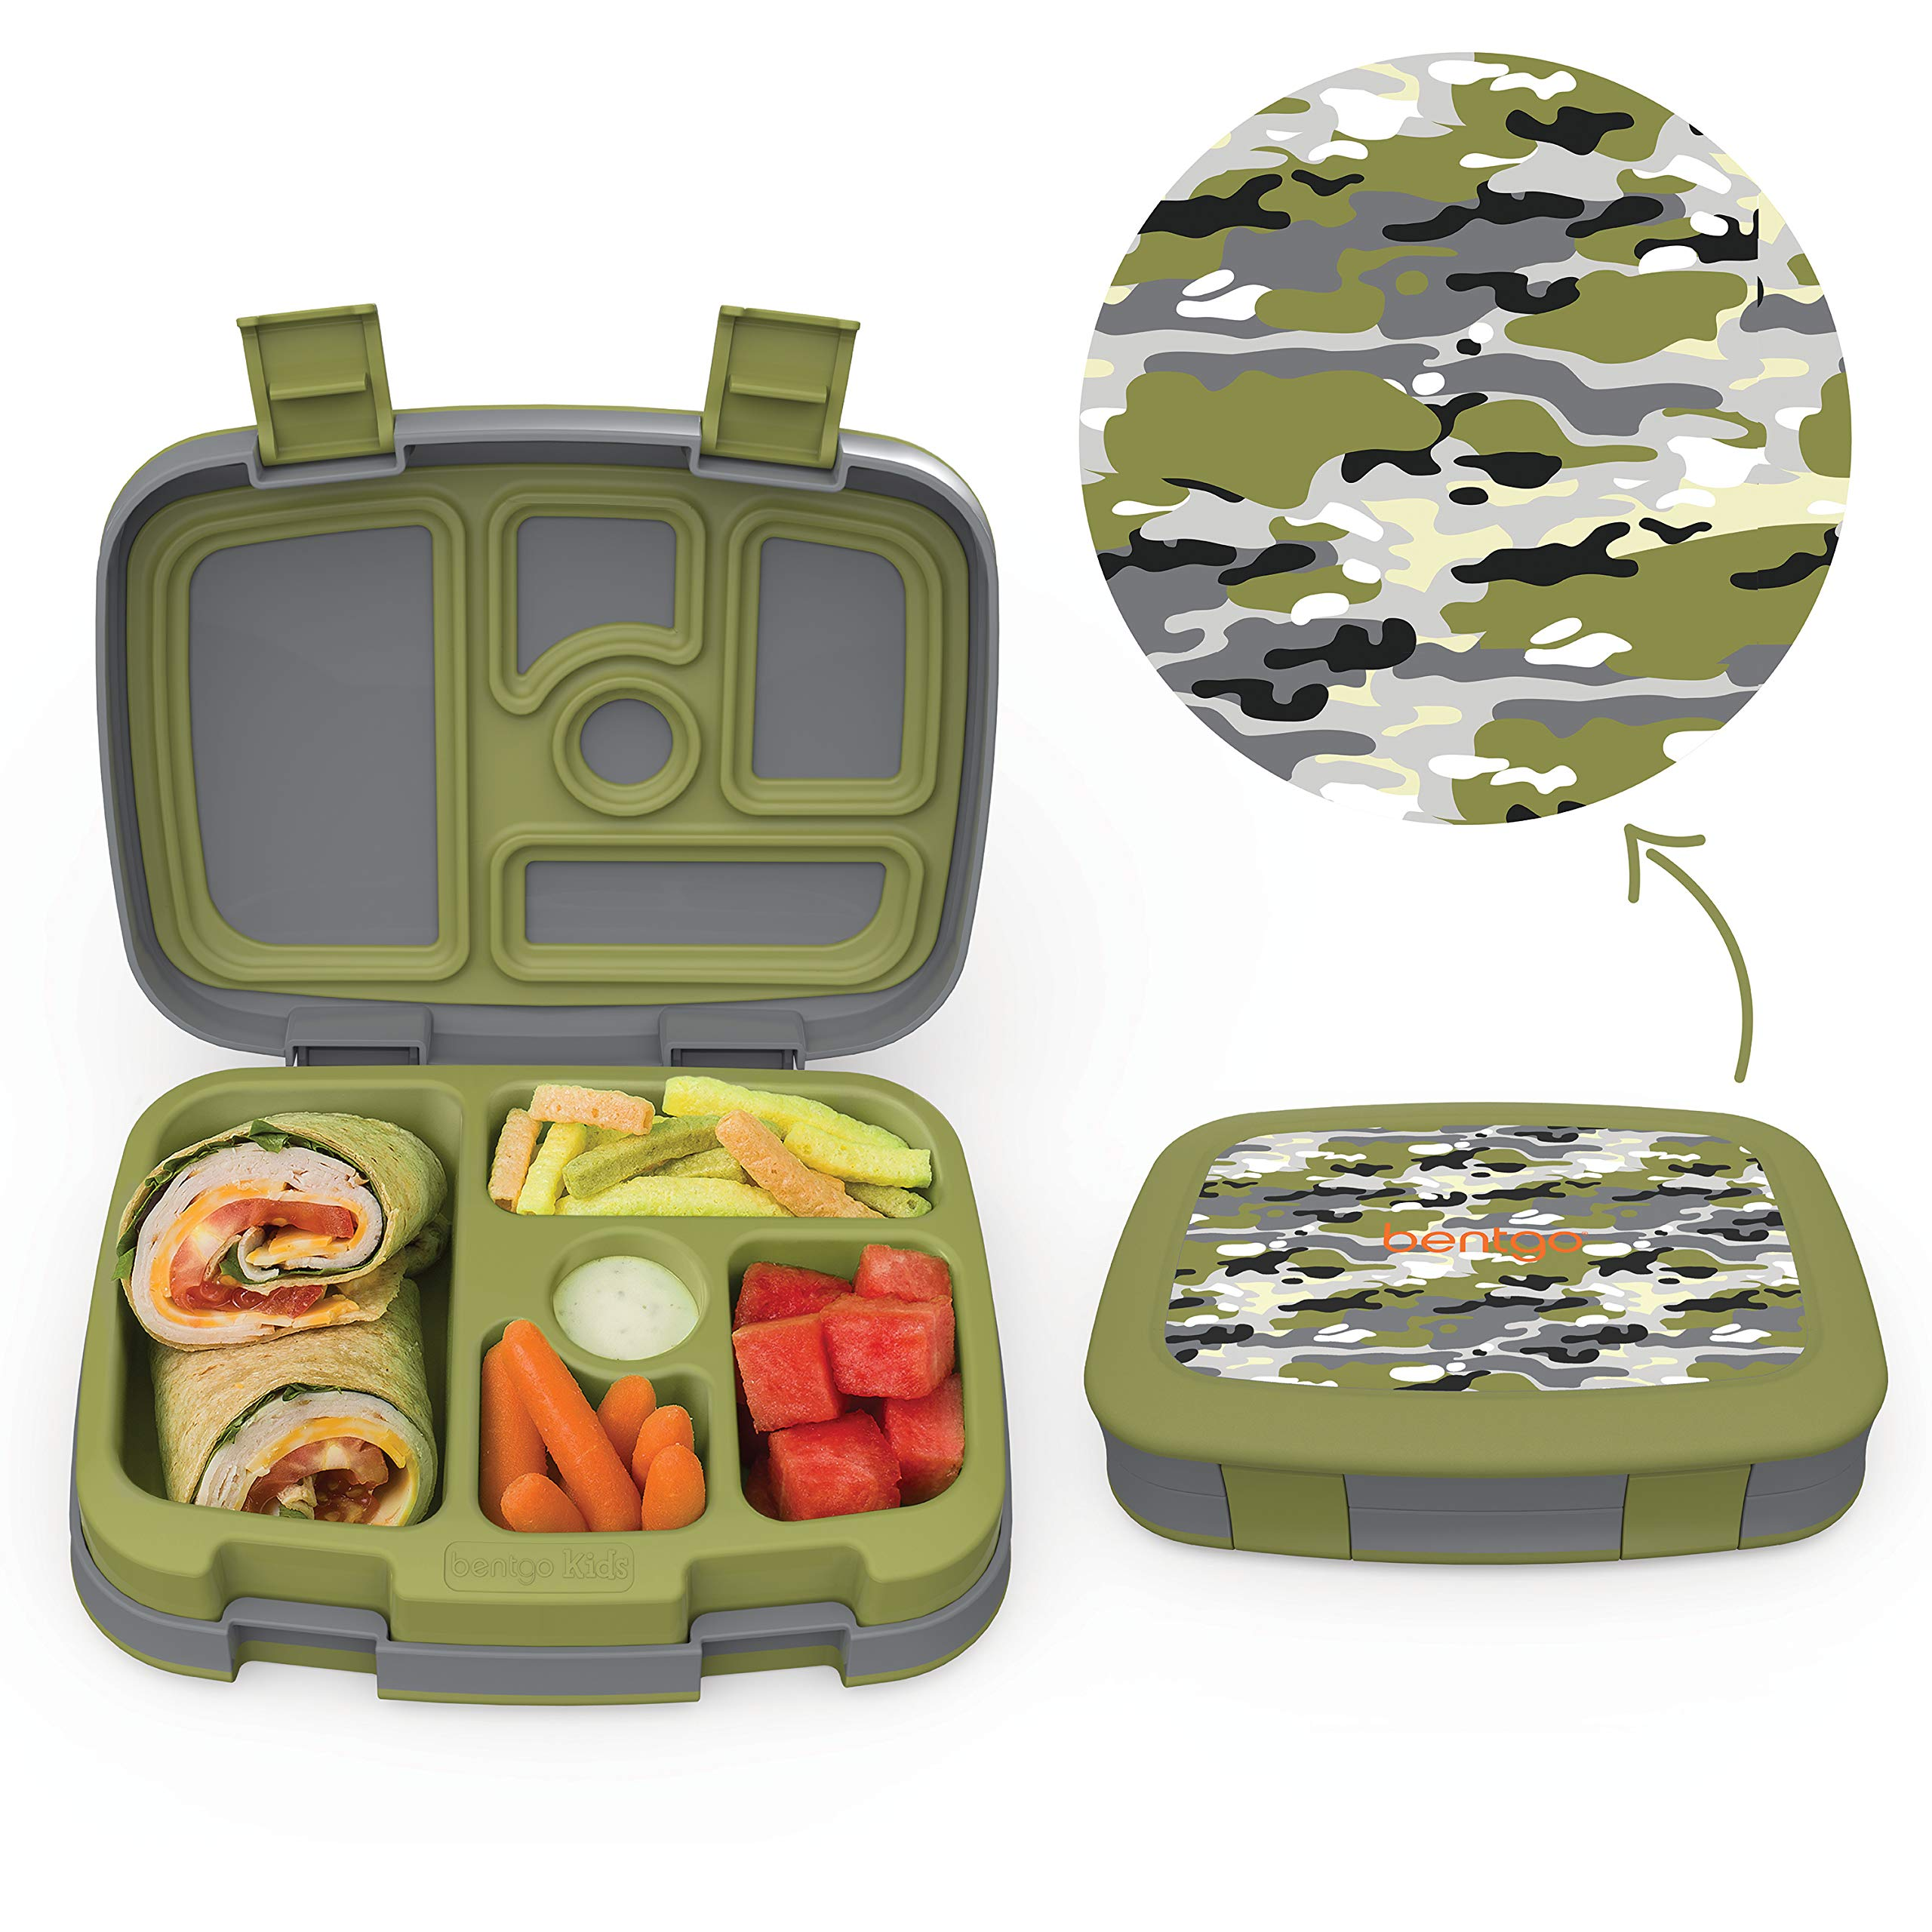 Bentgo Kids Prints (Camouflage) - Leak-Proof 5-Compartment Bento-Style Kids Lunch Box - Ideal Portion Sizes for Ages 3 to 7 - BPA-Free and Food-Safe Materials